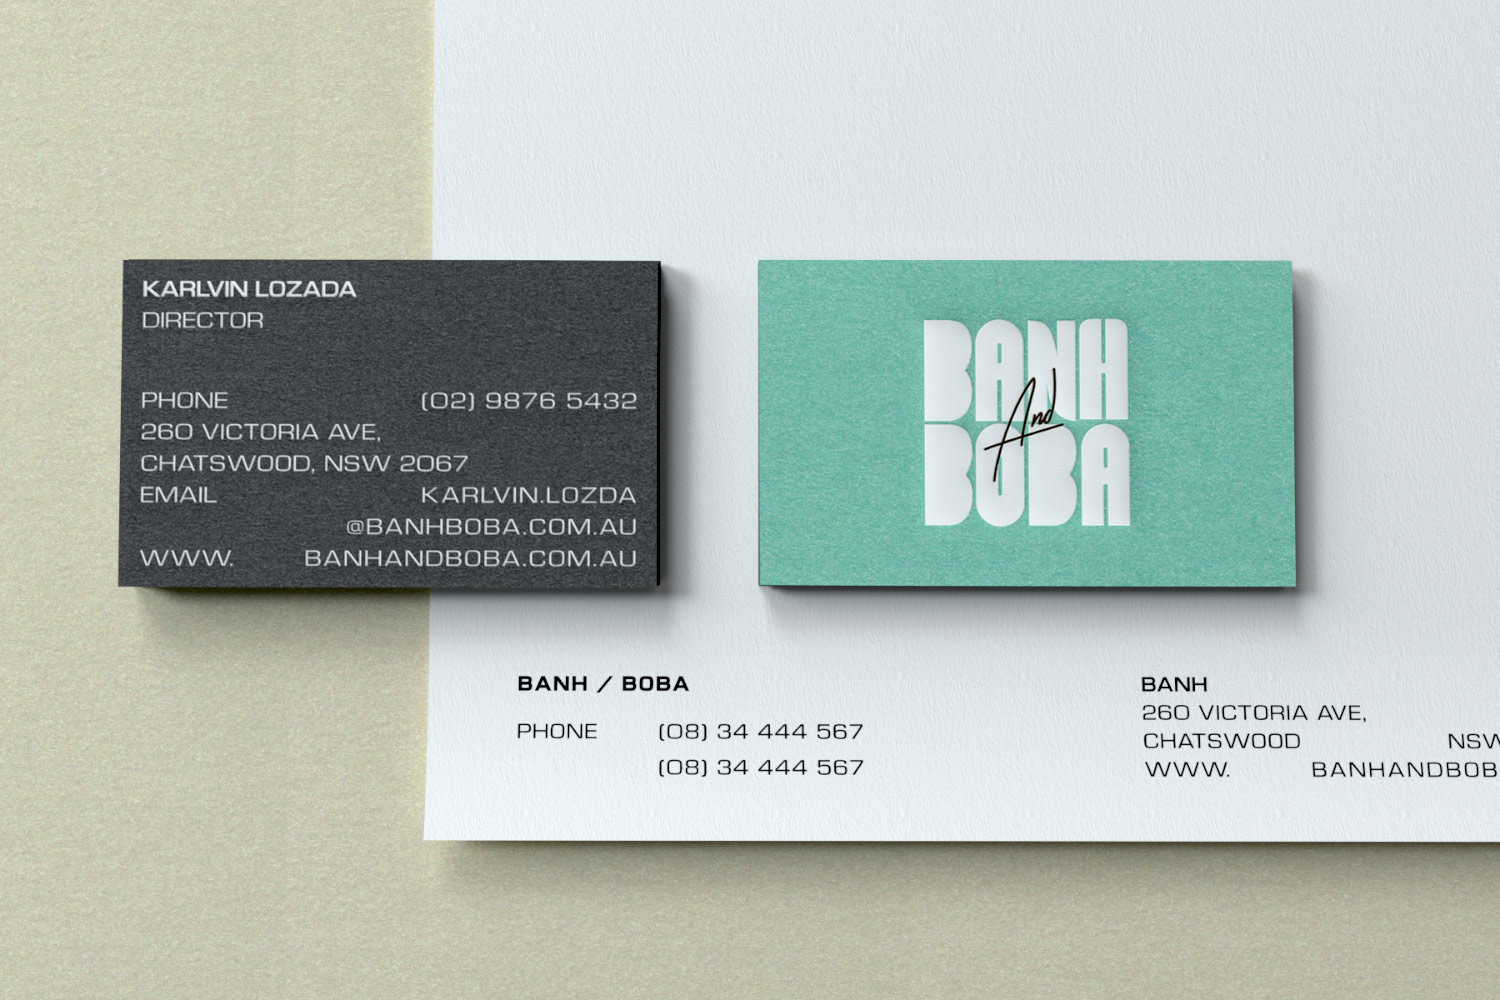 Banh and Boba business card with letterhead